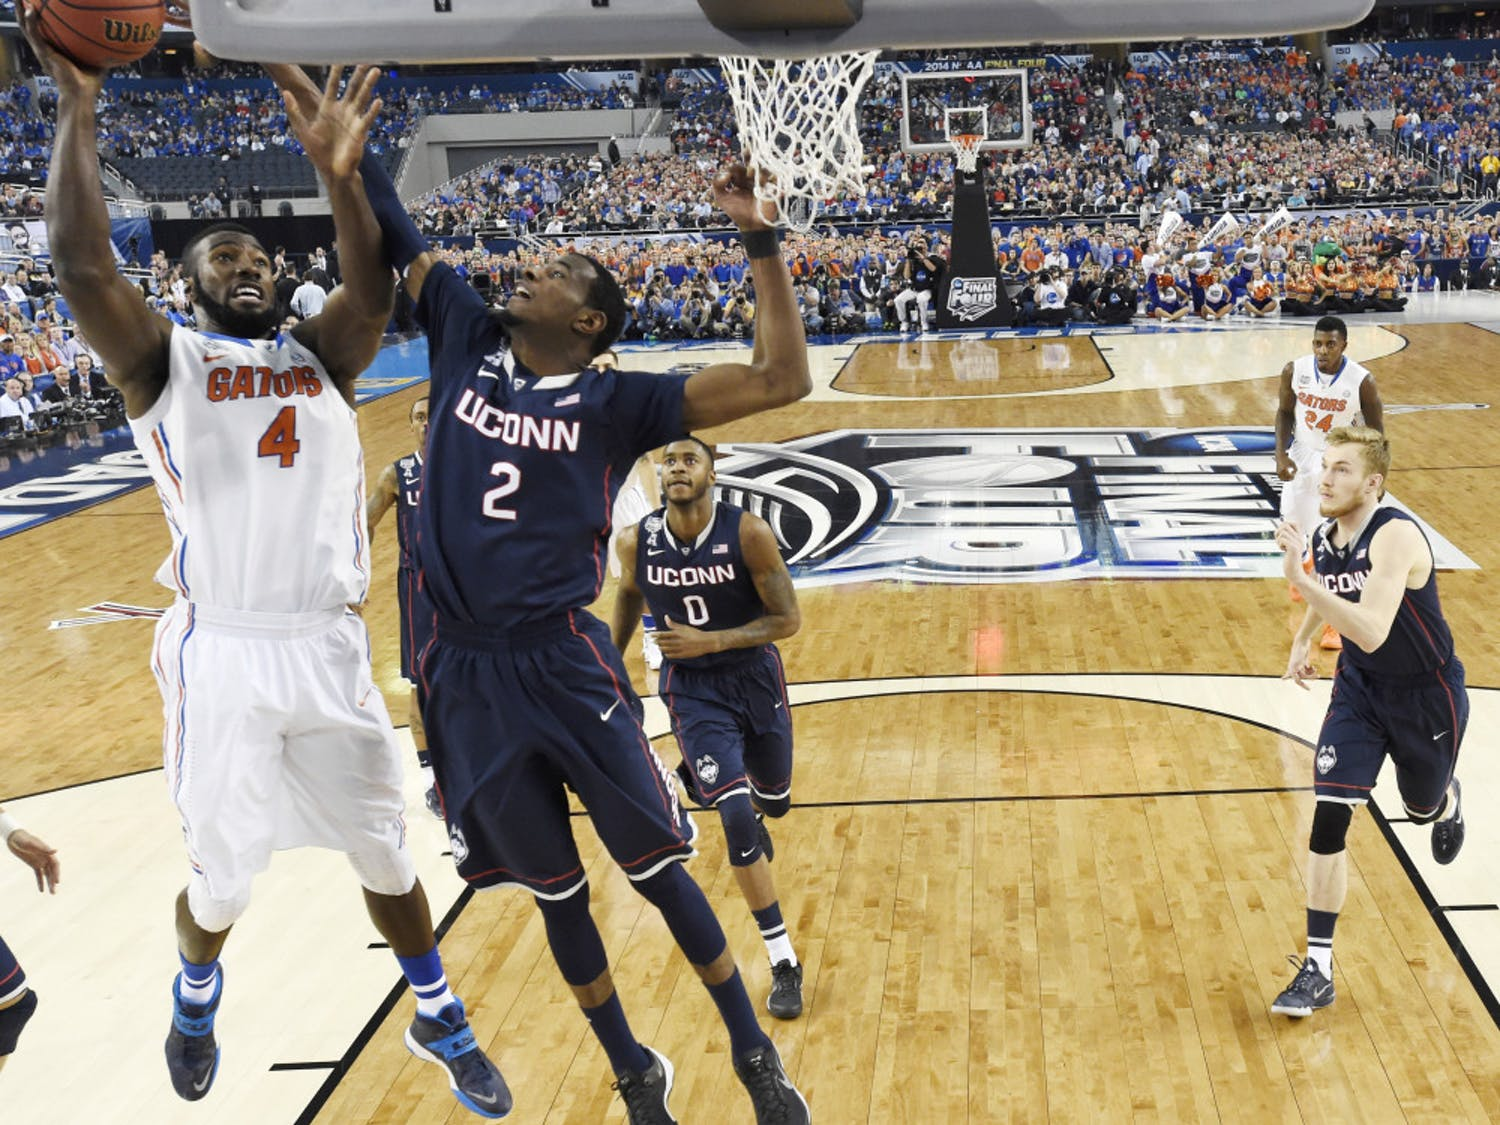 Florida center Patric Young (4) drives to the basket past Connecticut forward DeAndre Daniels (2) during the first half of the NCAA Final Four tournament game on Saturday in AT&T Stadium in Arlington, Texas.